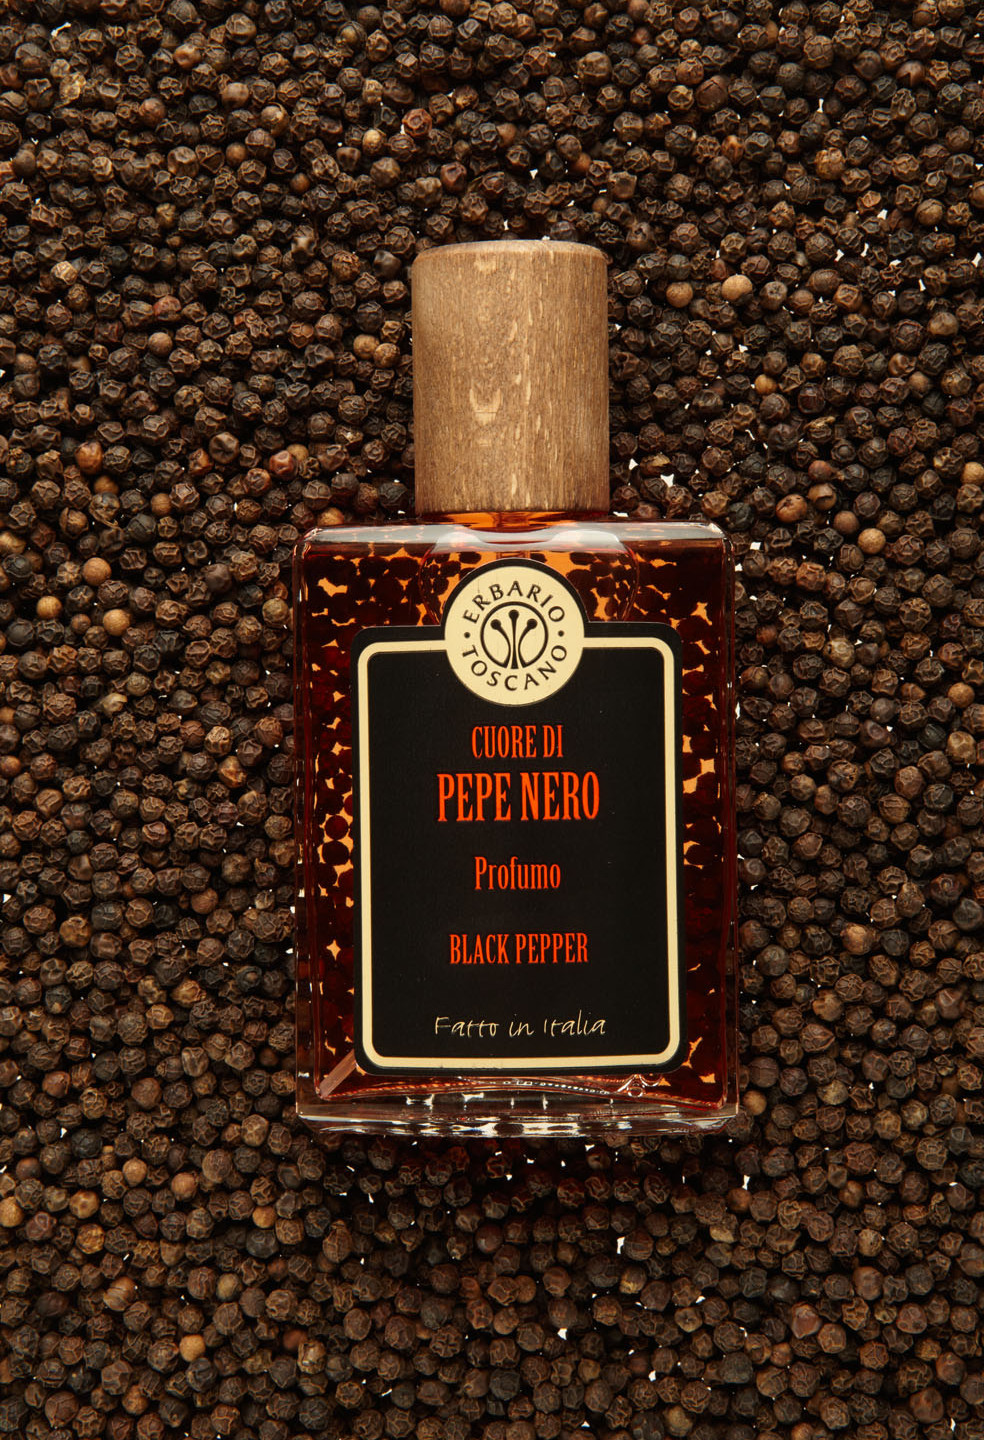 Erbario Toscano Black Pepper